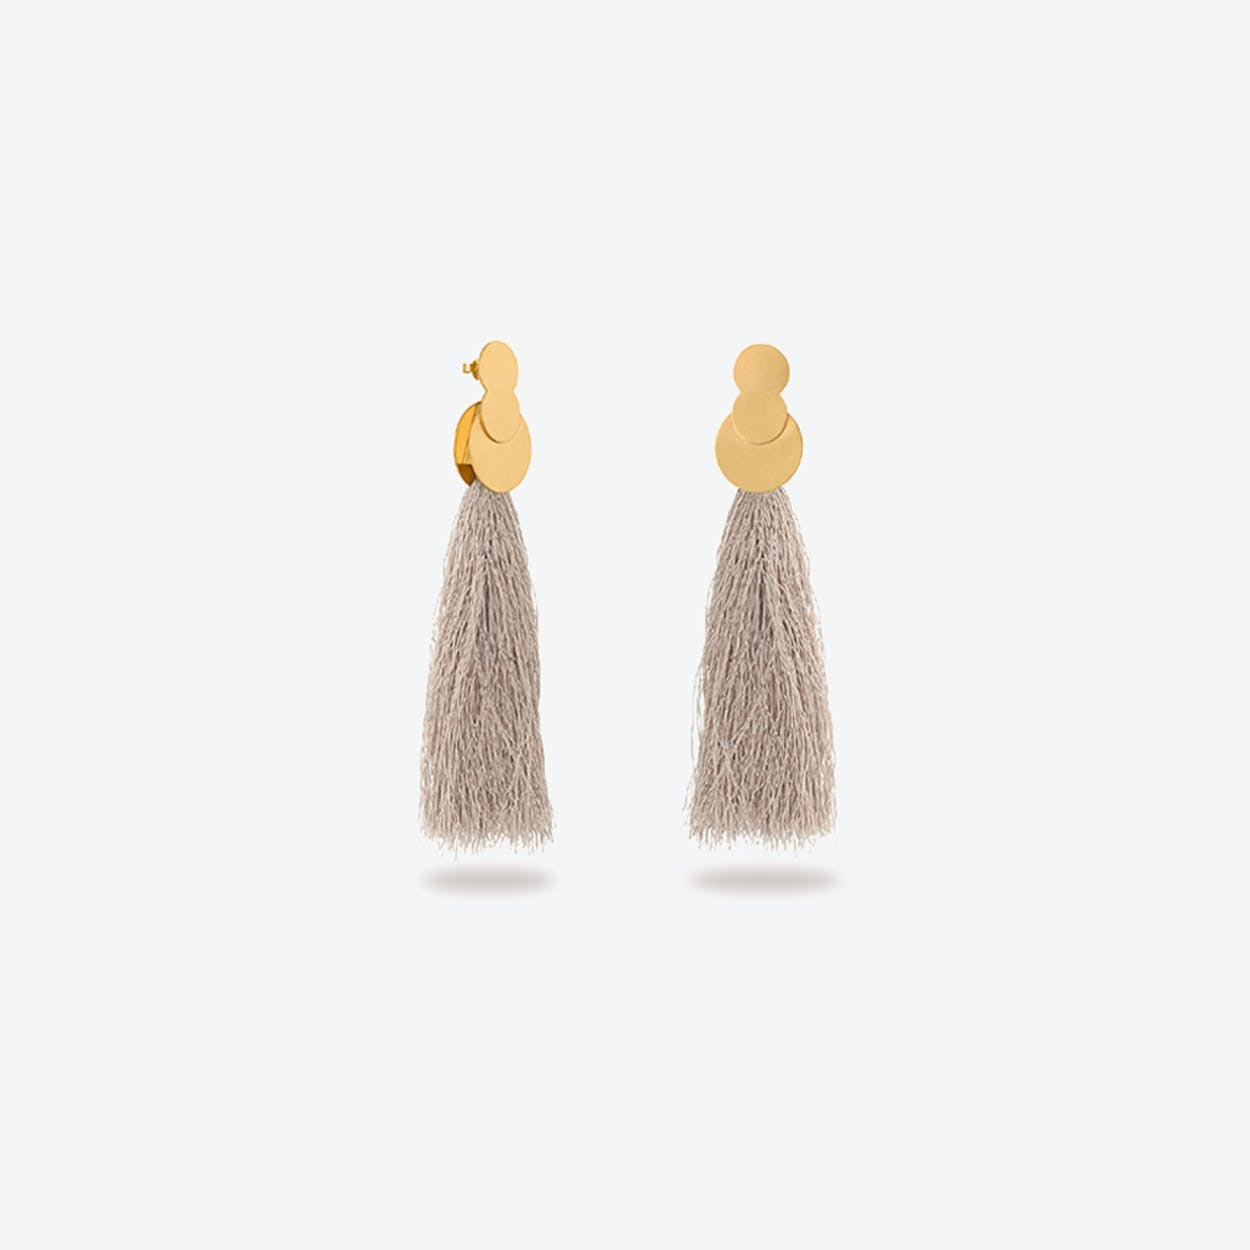 La Nuit Earrings in Champagne